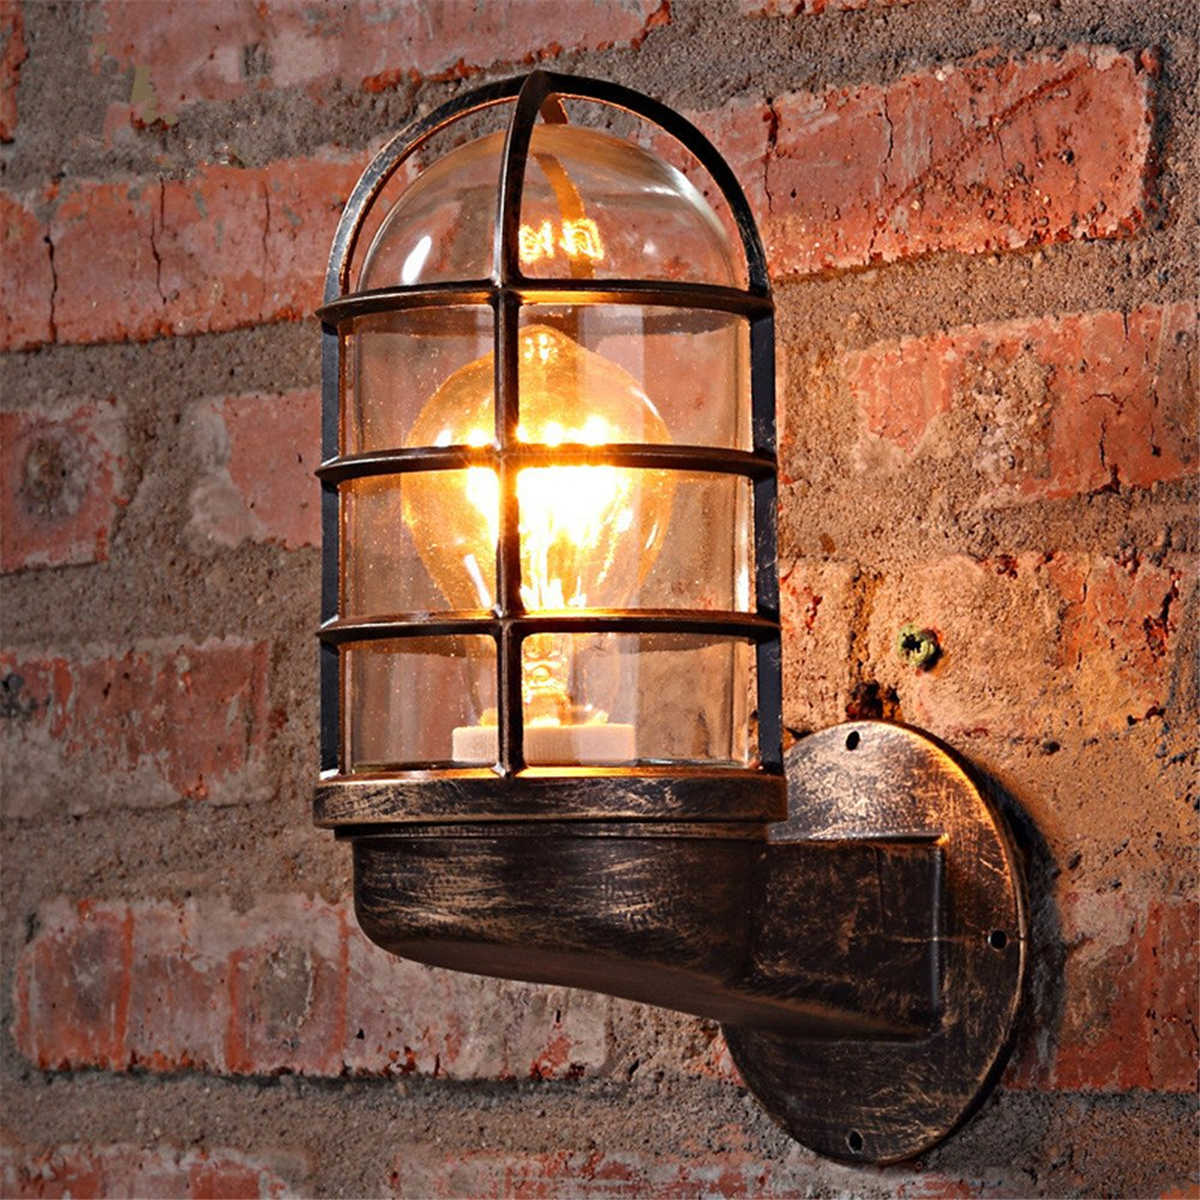 Vintage Industrial Unique Wall Light Cage Guard Sconce Loft Light Fixture Modern Indoor Lighting Wall Lamps Iron Copper Wall Lamps Aliexpress